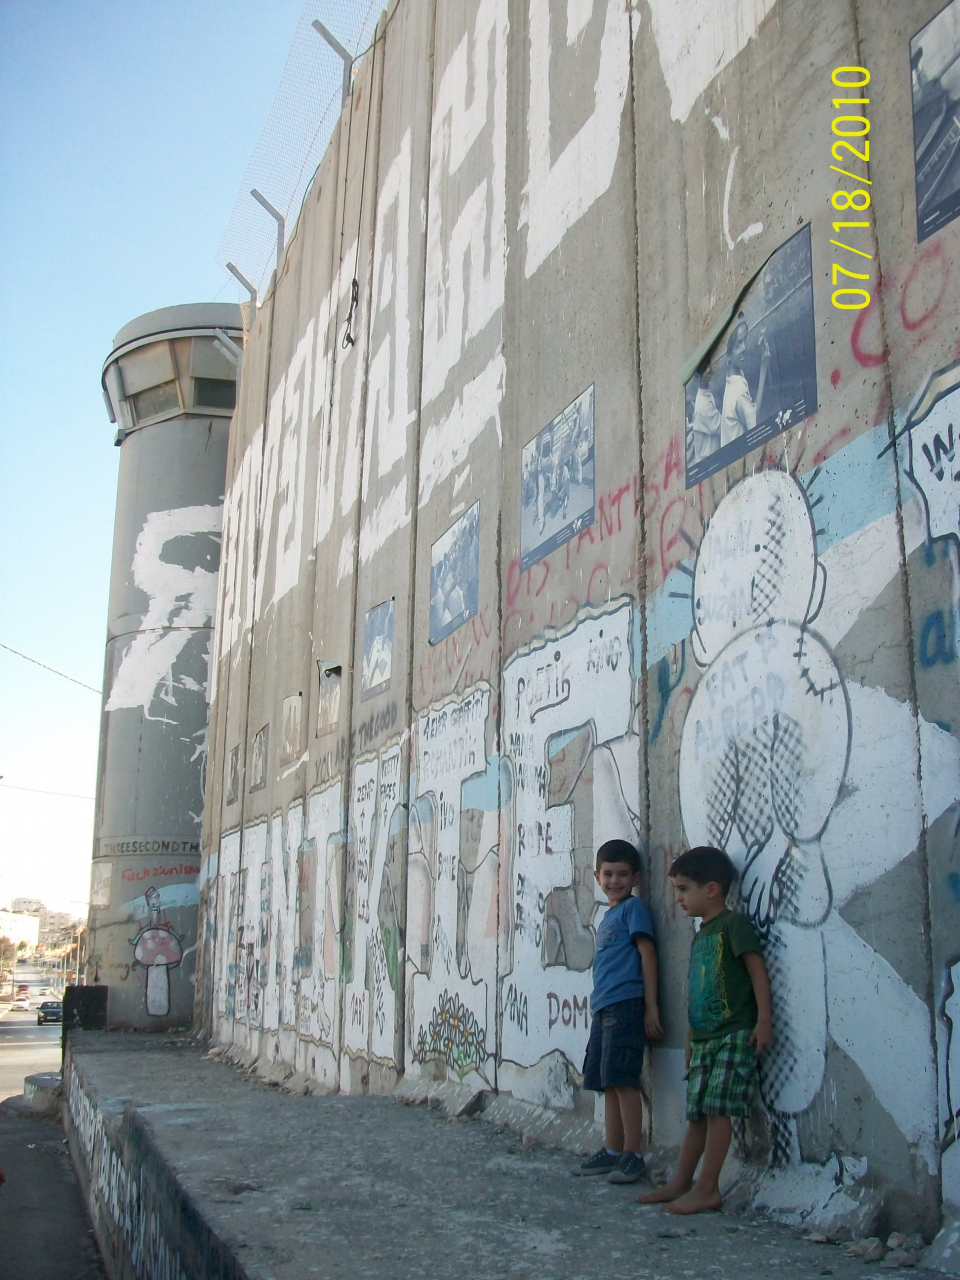 Israeli military watch towers on the Separation Wall / Photo courtesy Sylvia Dahdal